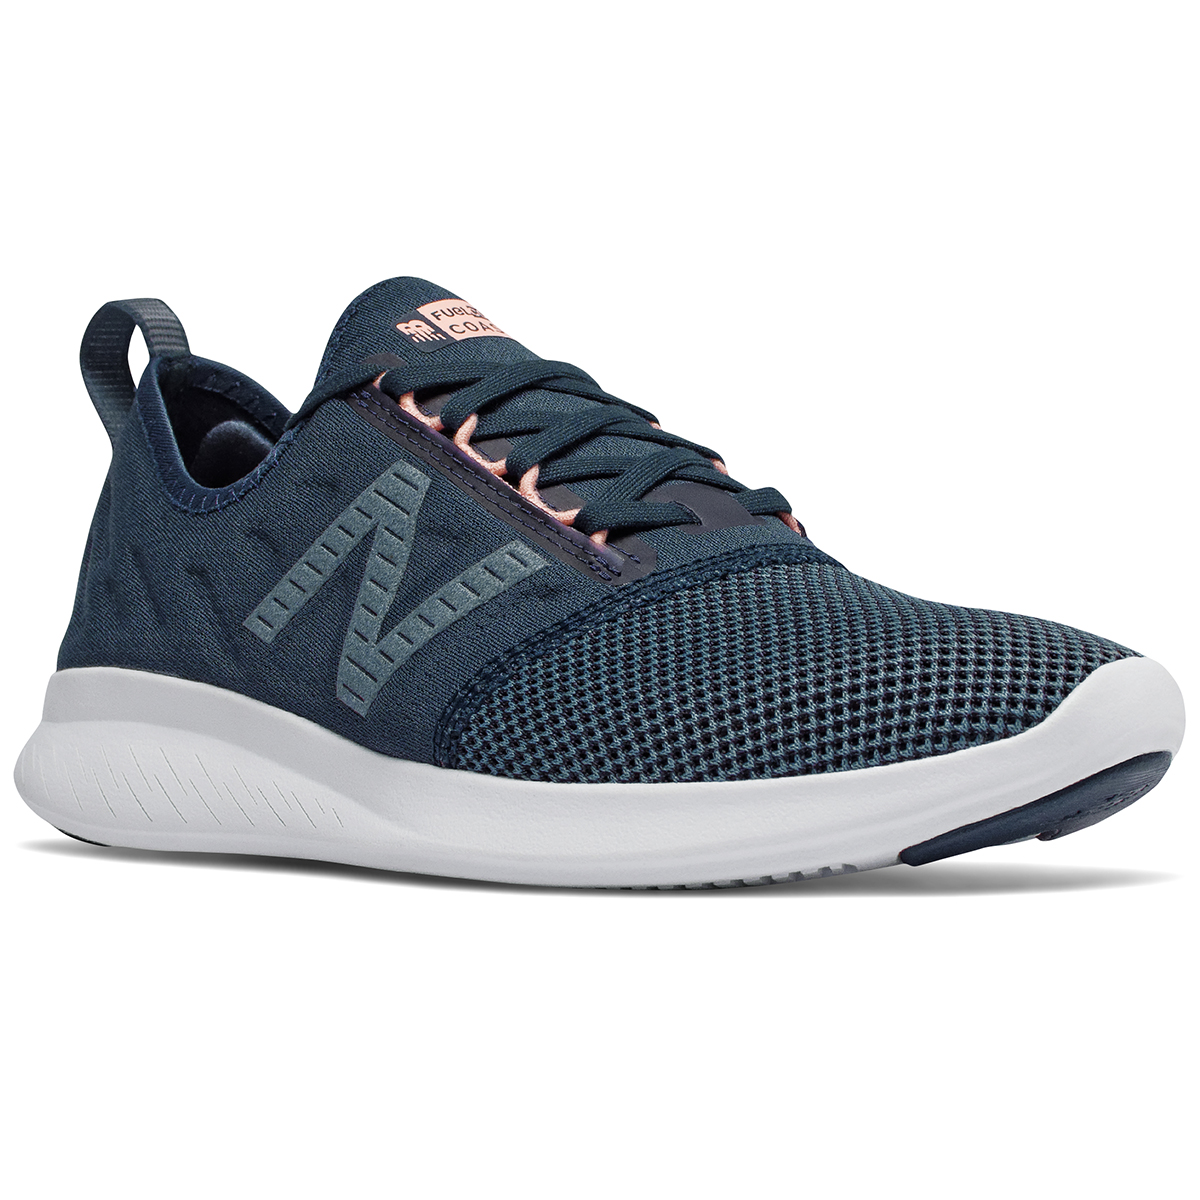 New Balance Women's Fuelcore Coast V4 Running Shoes - Blue, 10